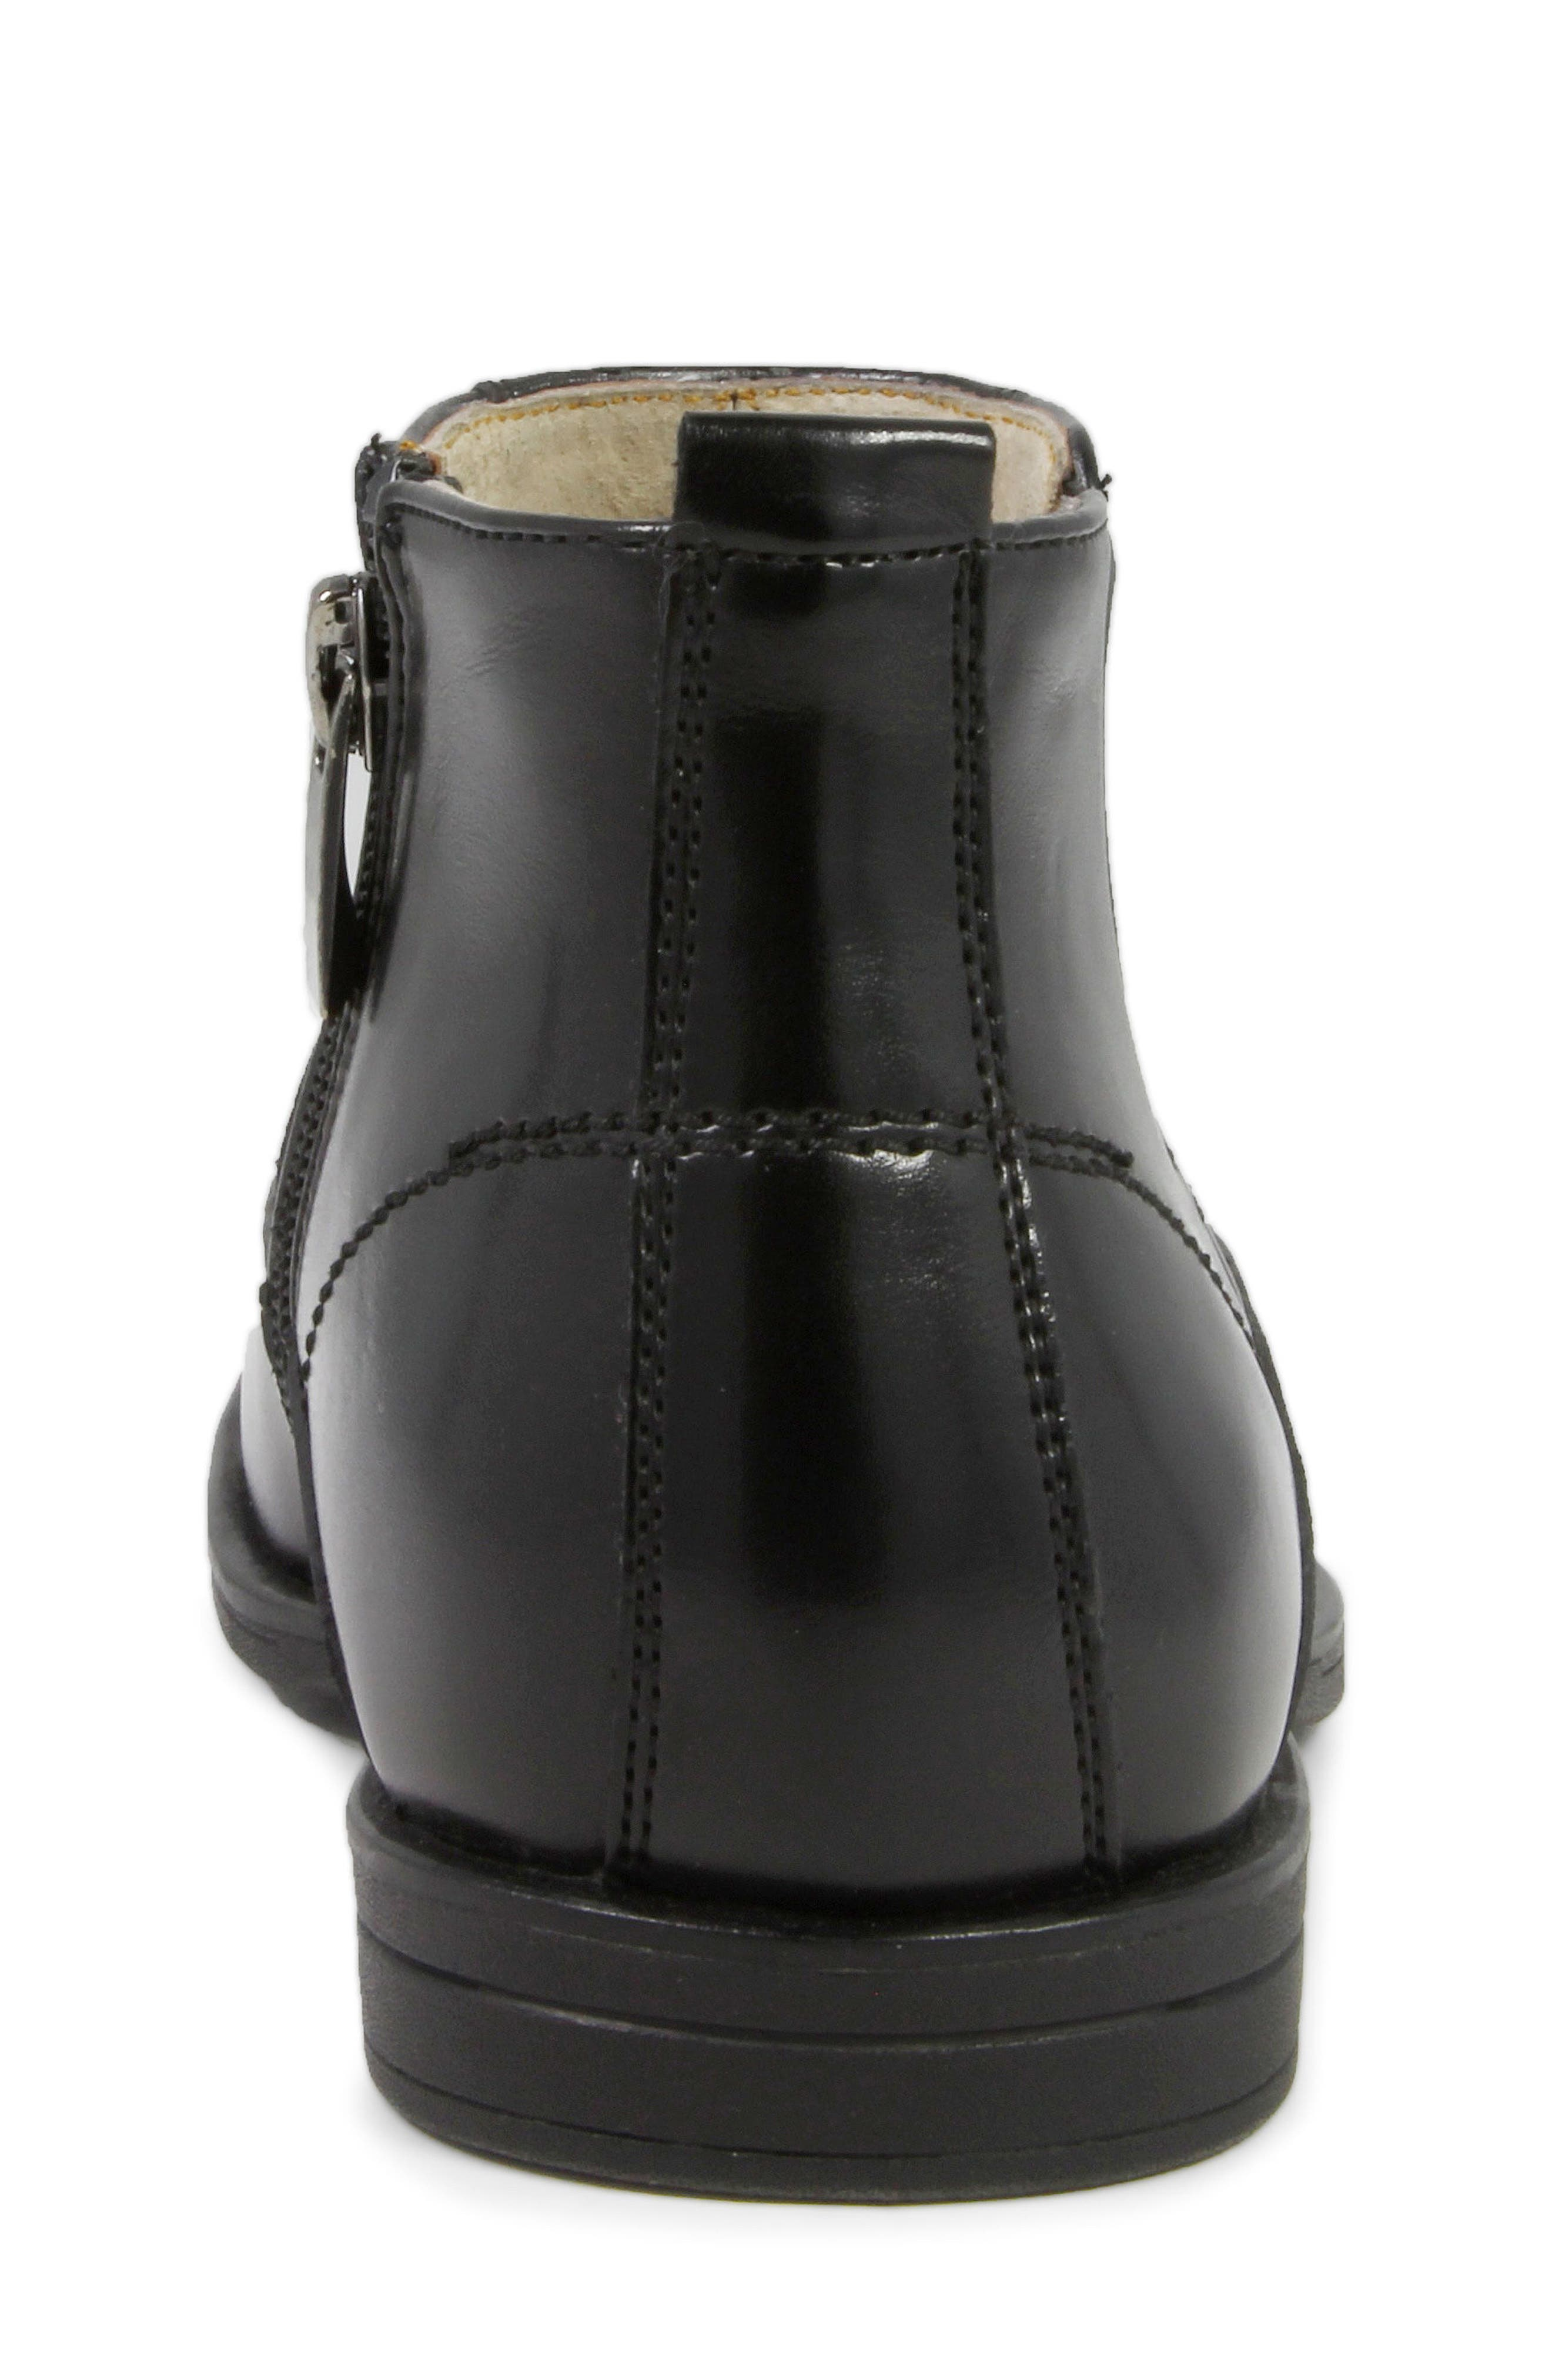 Reveal Chelsea Boot,                             Alternate thumbnail 9, color,                             BLACK